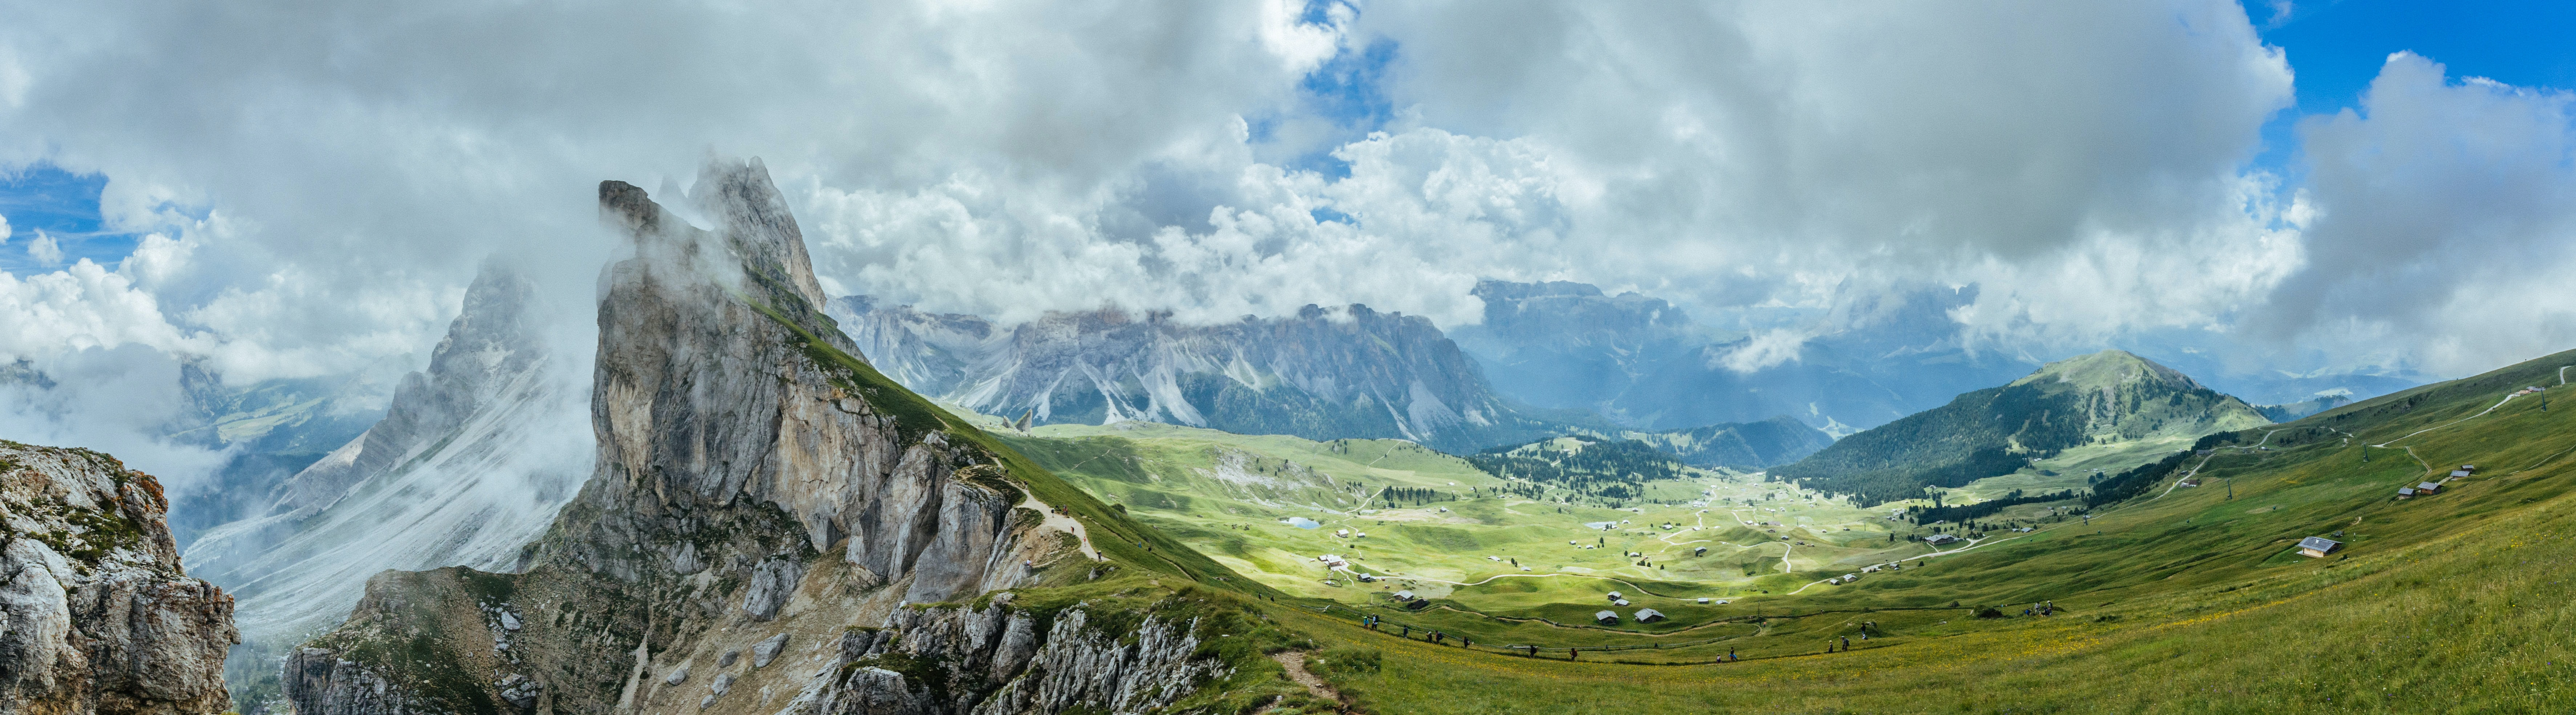 A beautiful mountainous landscape with white fluffy clouds over green fields and tall peaks in Seceda